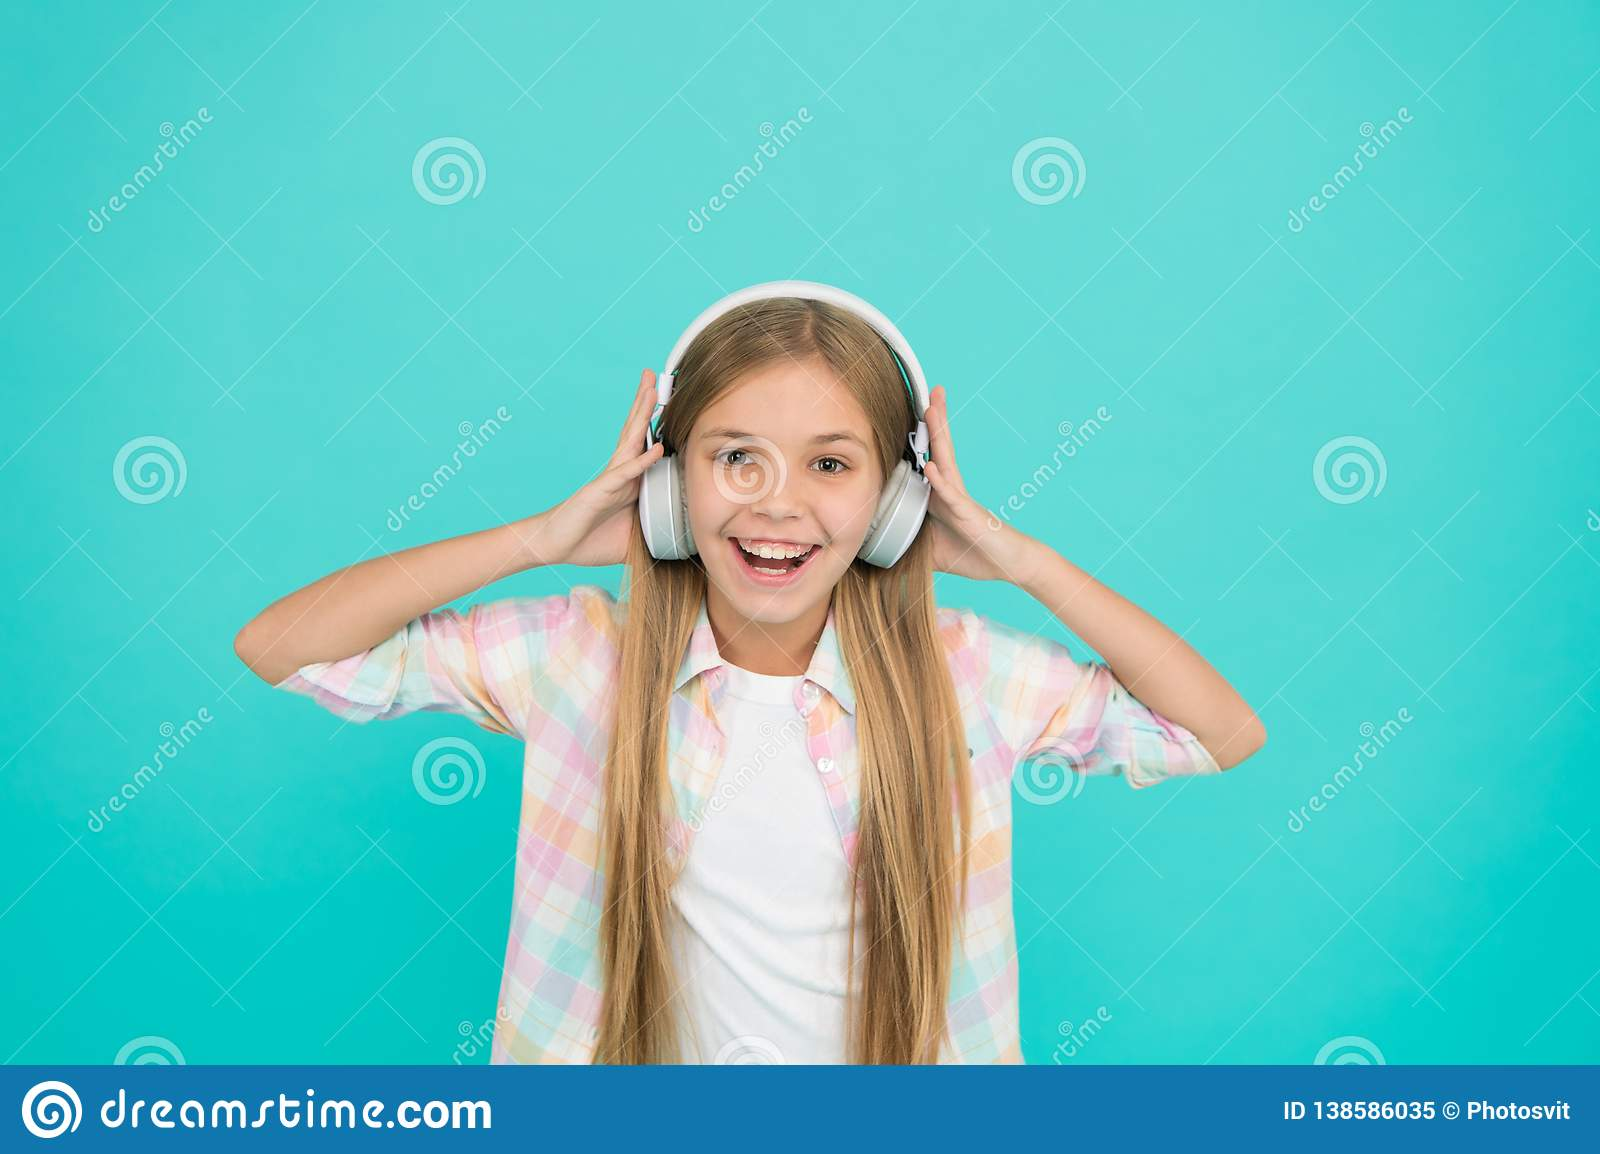 She is actually a big music fan. Happy little child enjoy music playing in headphones. Little girl child listening to